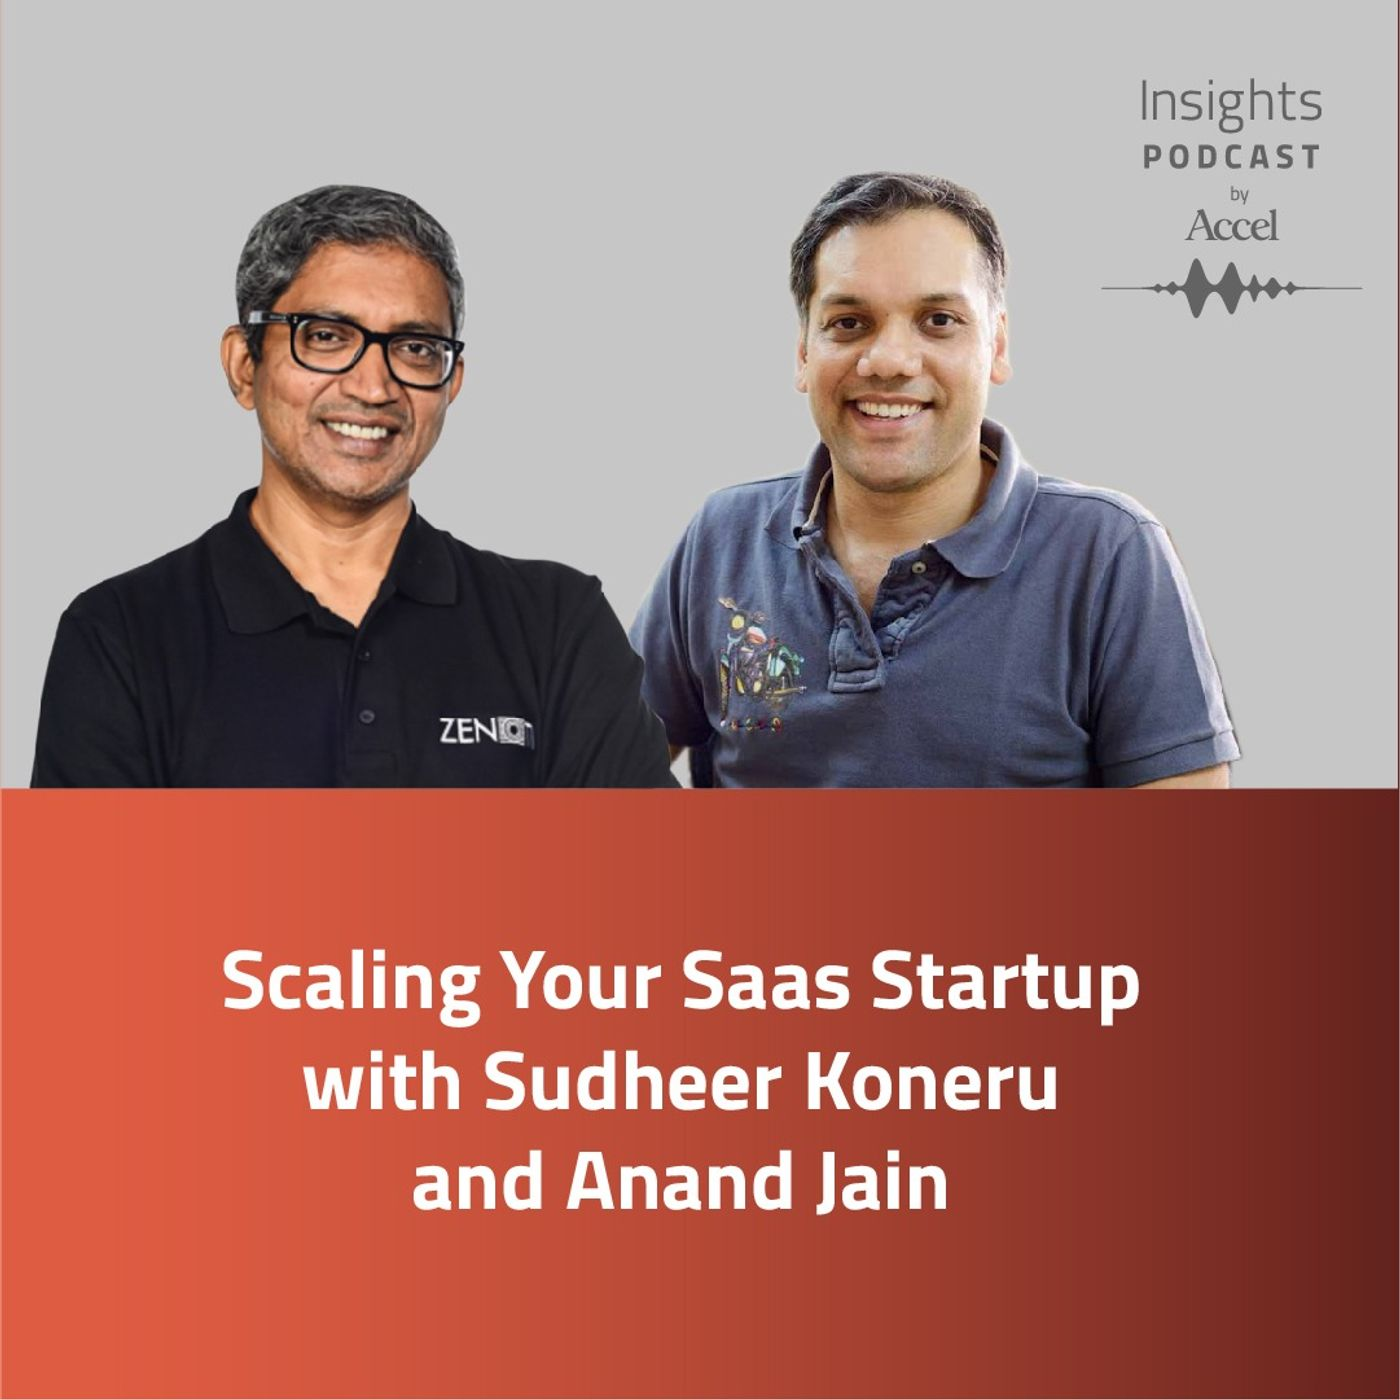 INSIGHTS #52 – Scaling your SaaS Startup with Sudheer Koneru and Anand Jain